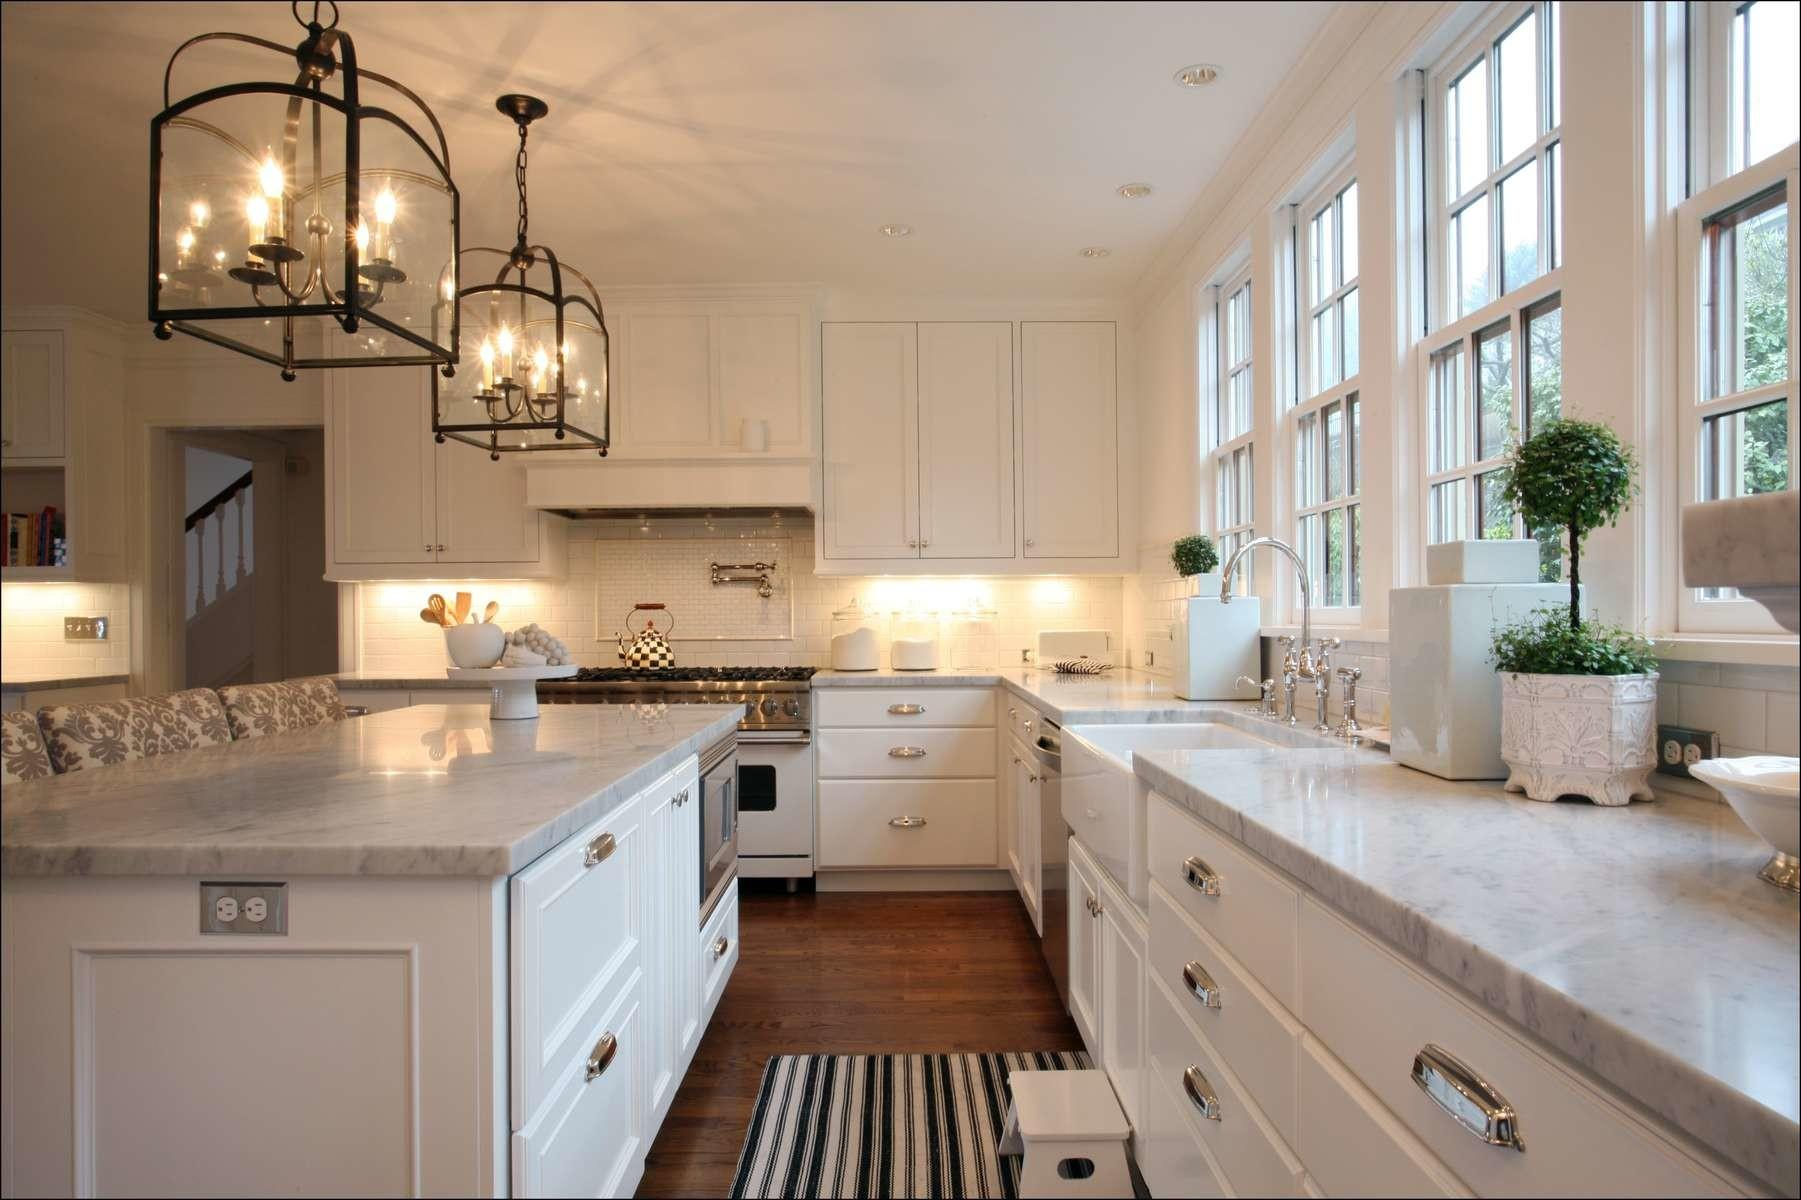 Home Renovations Kitchen Colonial